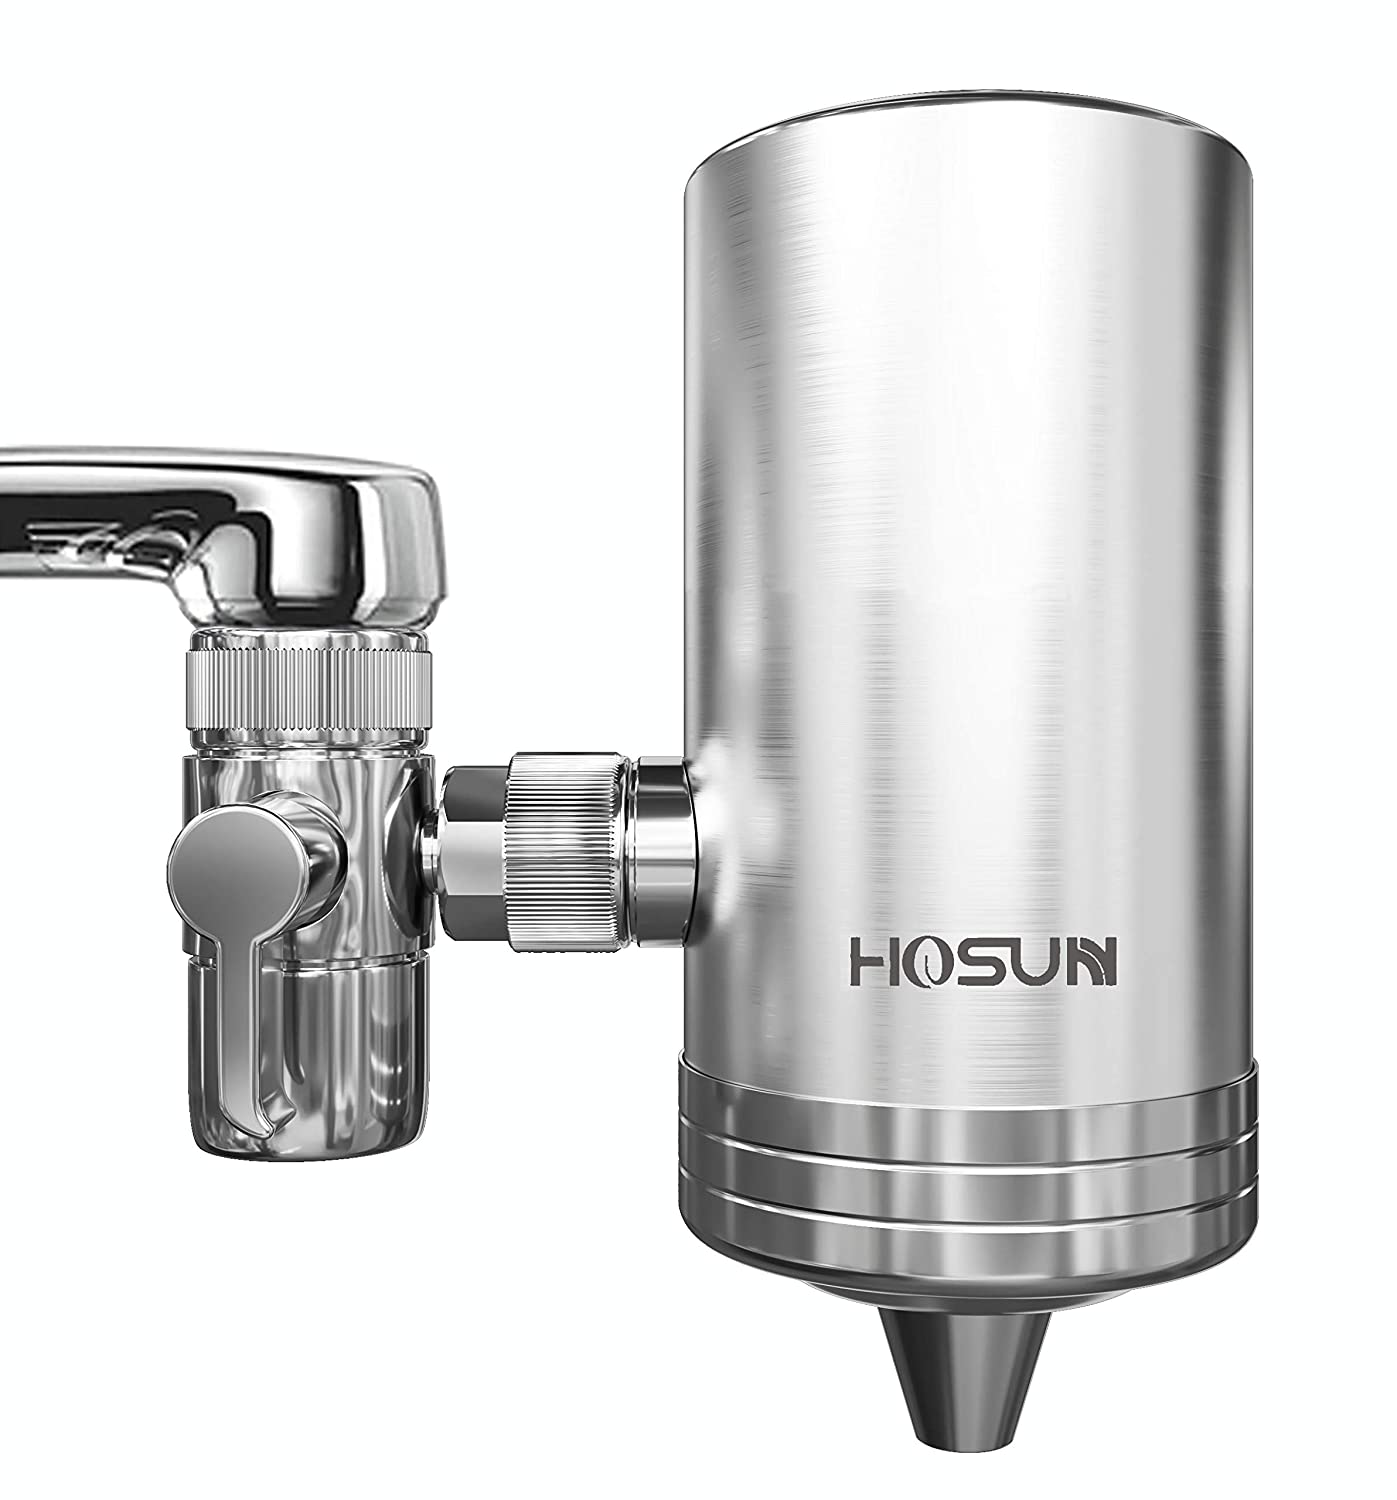 HOSUN SUS304 Water Filter for Sink